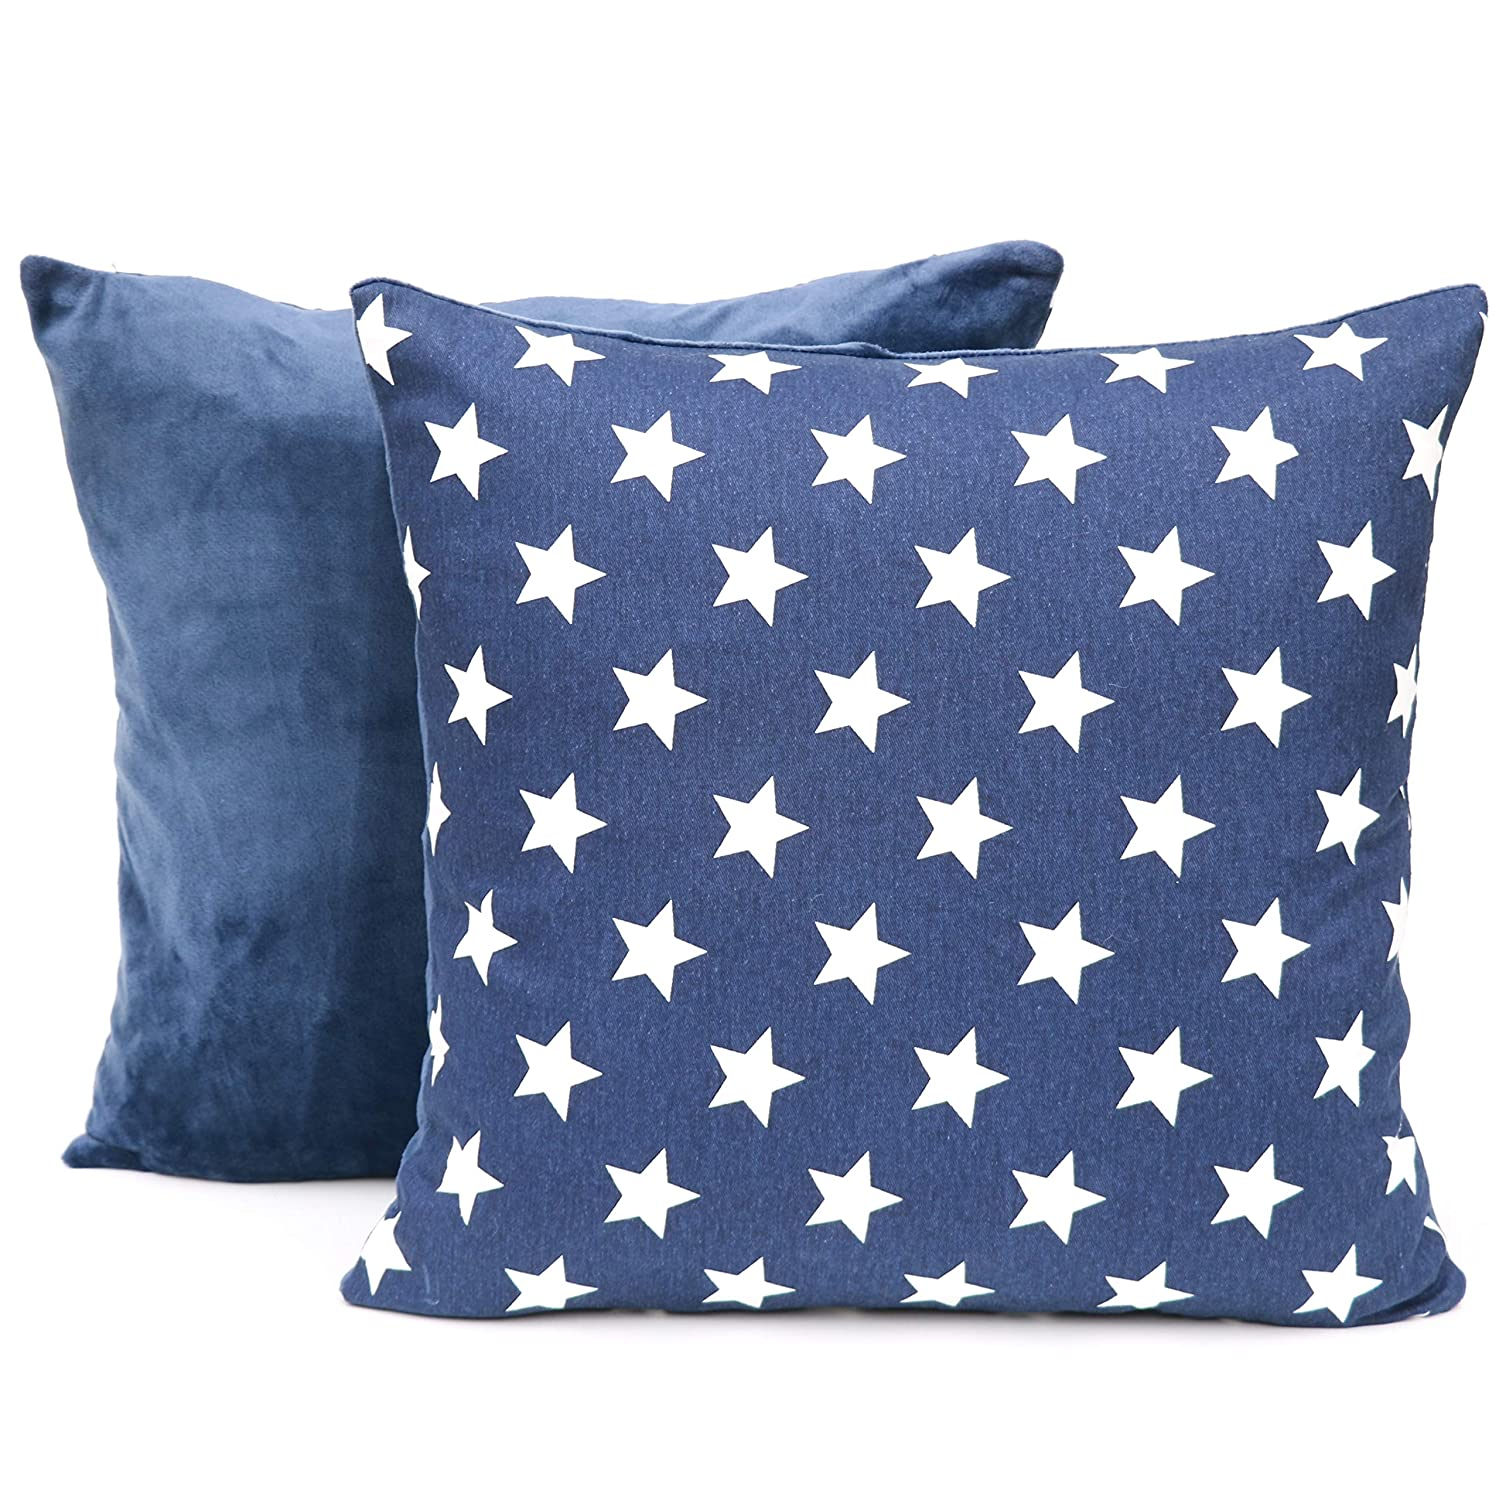 """MiniOwls Decorative Throw Pillow Covers Set of Two Kid/'s Room or Nursery Gray with White Arrows 2 17/""""x17/"""" Accent Plush Cushion Cases Soft D/écor for a Livingroom Sofa"""